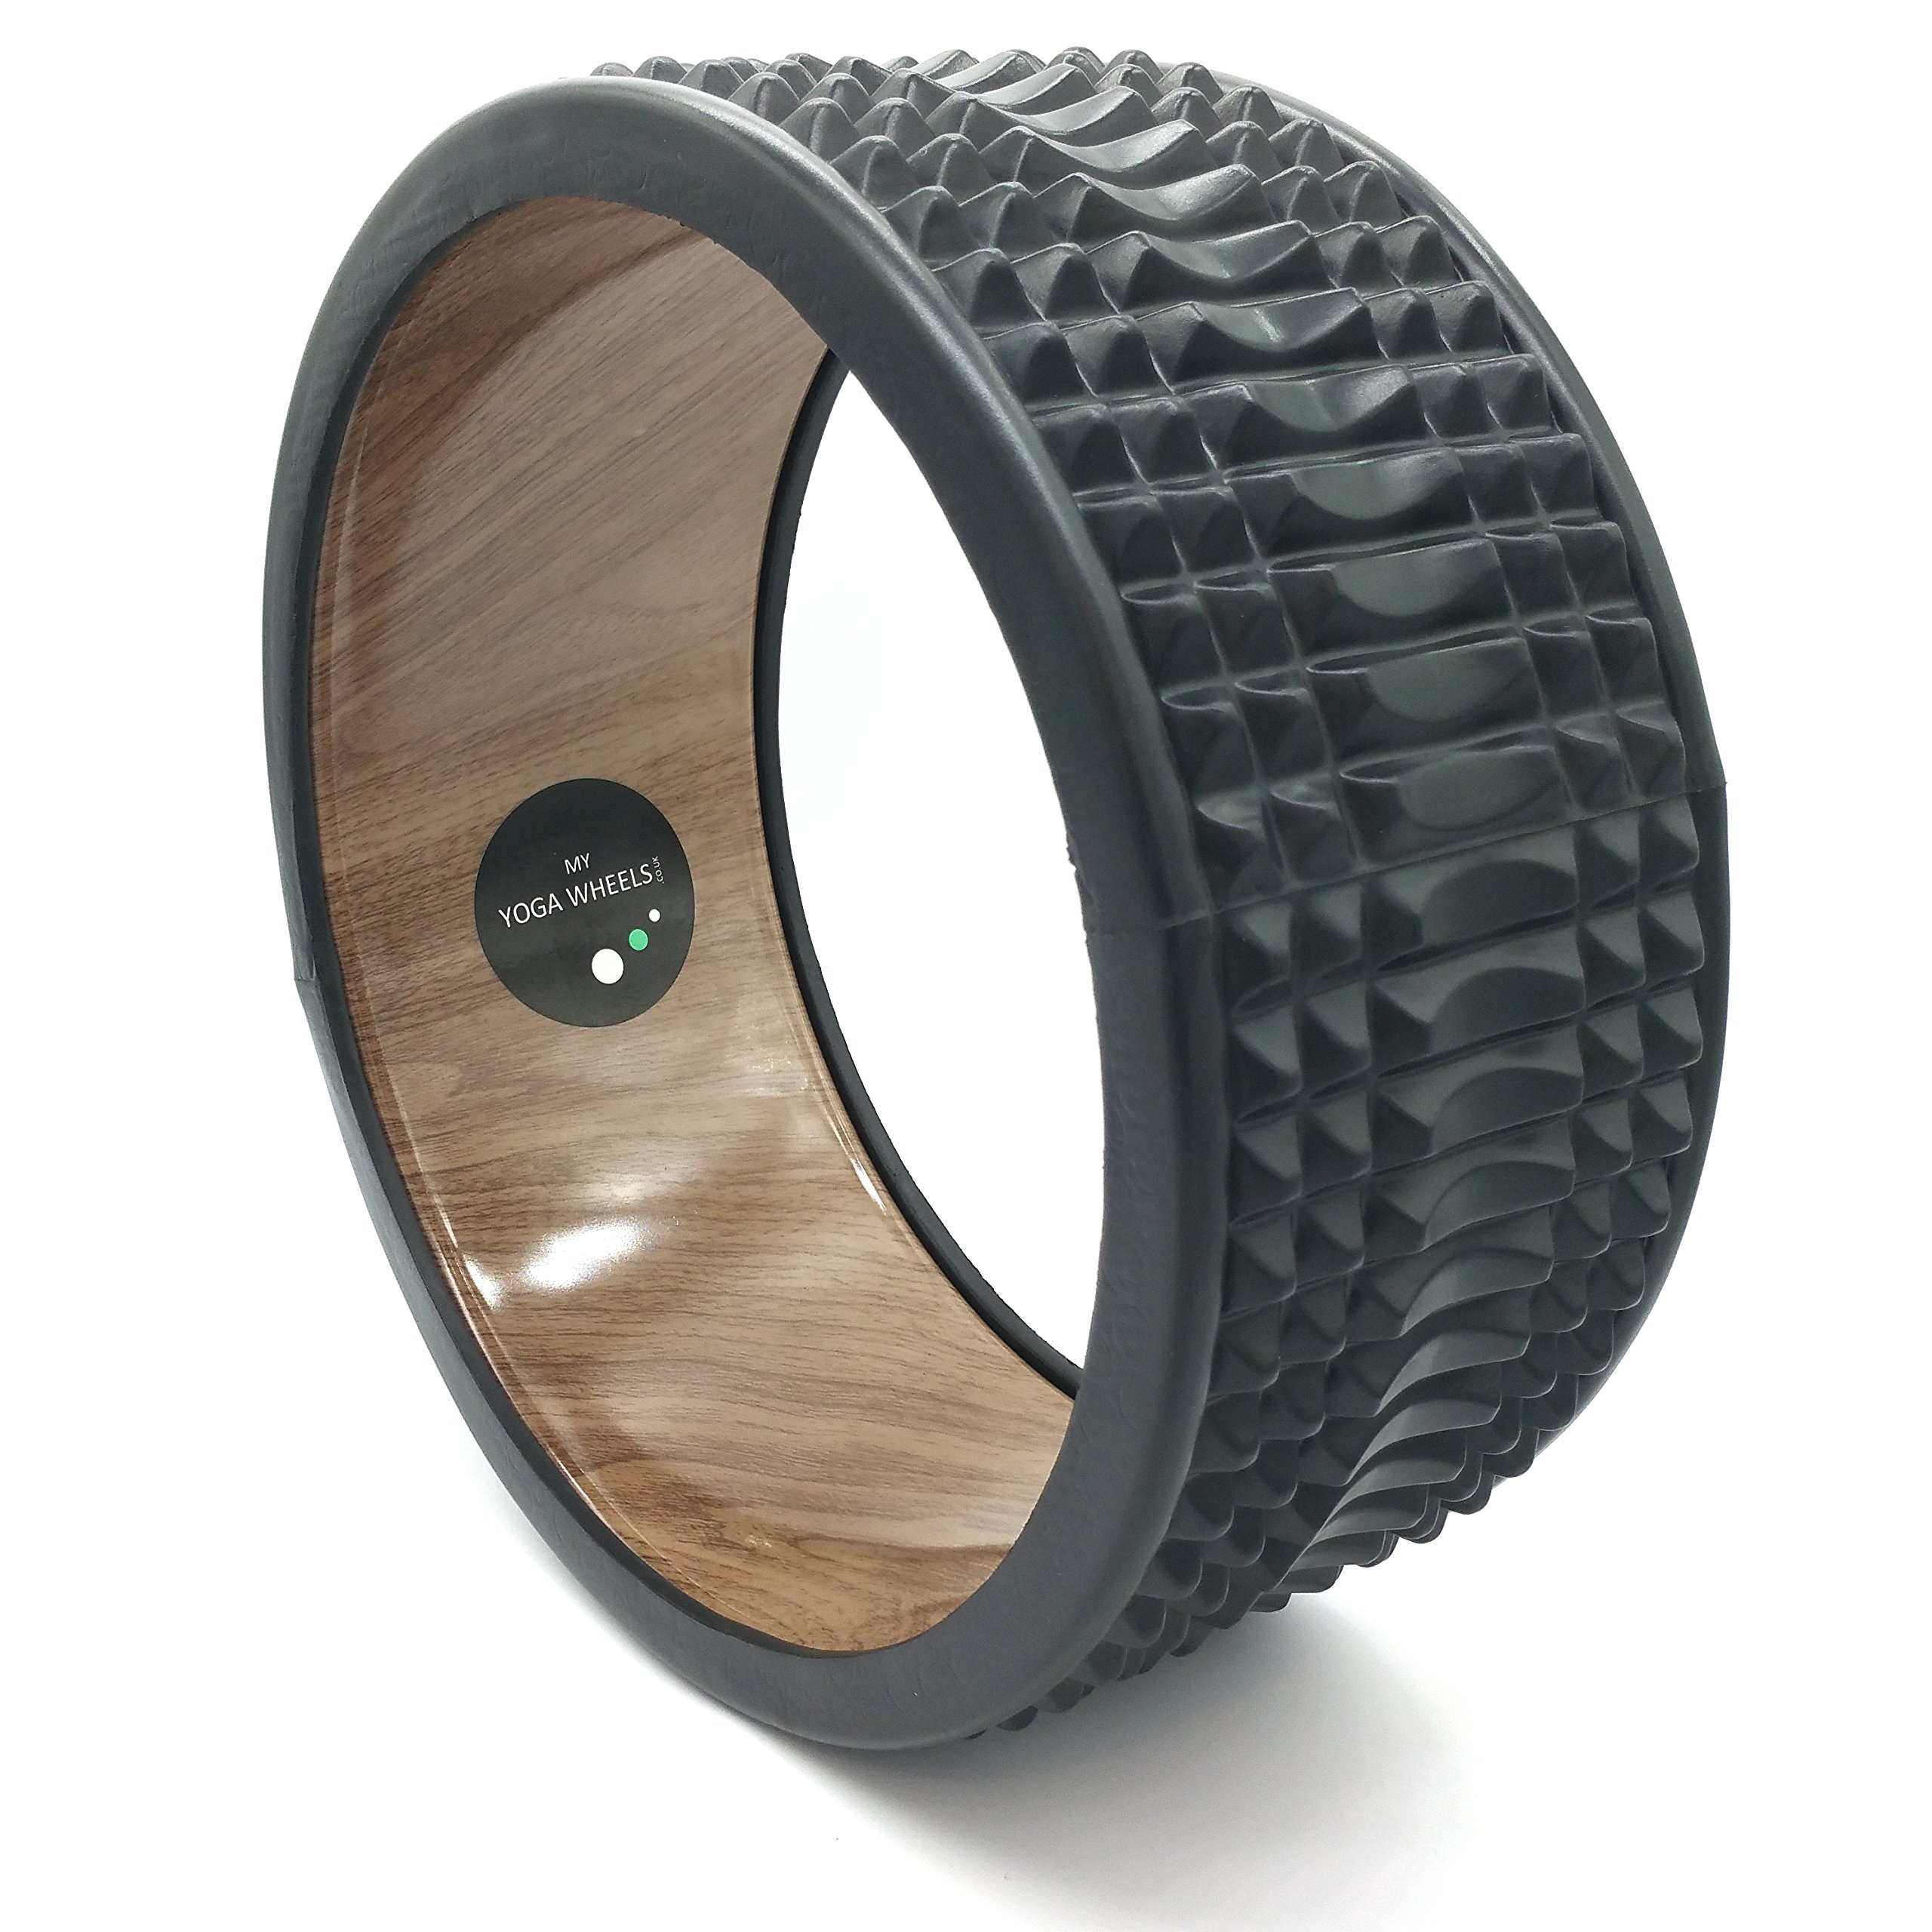 MyYogaWheels Trigger Point Yoga Wheel - Release Deep Tissue Tension - Physio Massage to Open Chest, Back, Hips + Shoulders (Wood + Black) by MyYogaWheels